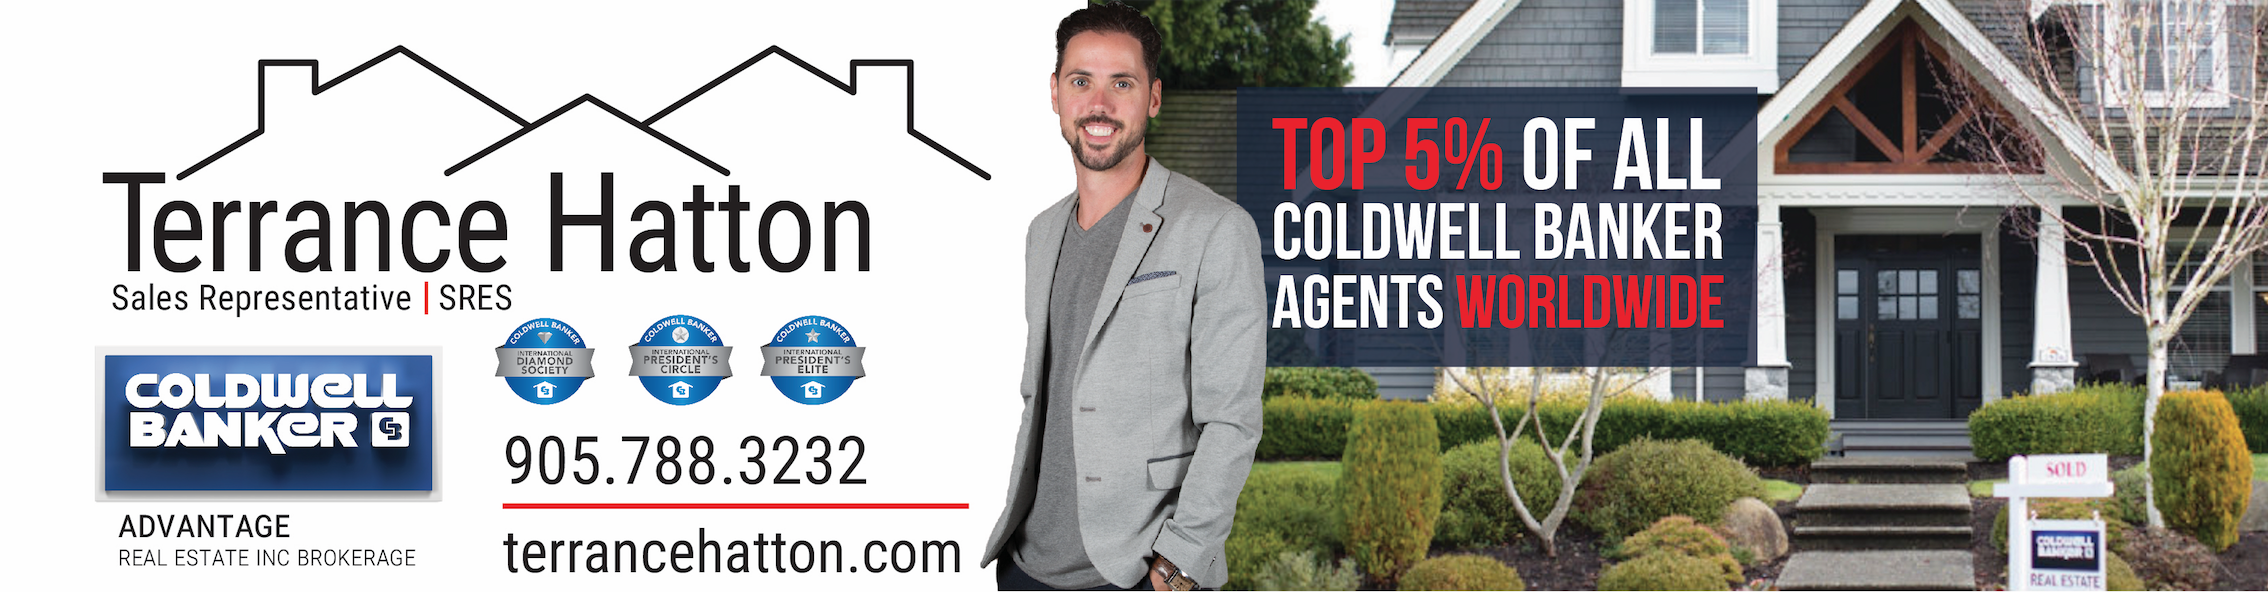 Terrance Hatton Coldwell Banker Real Estate Inc., Brokerage